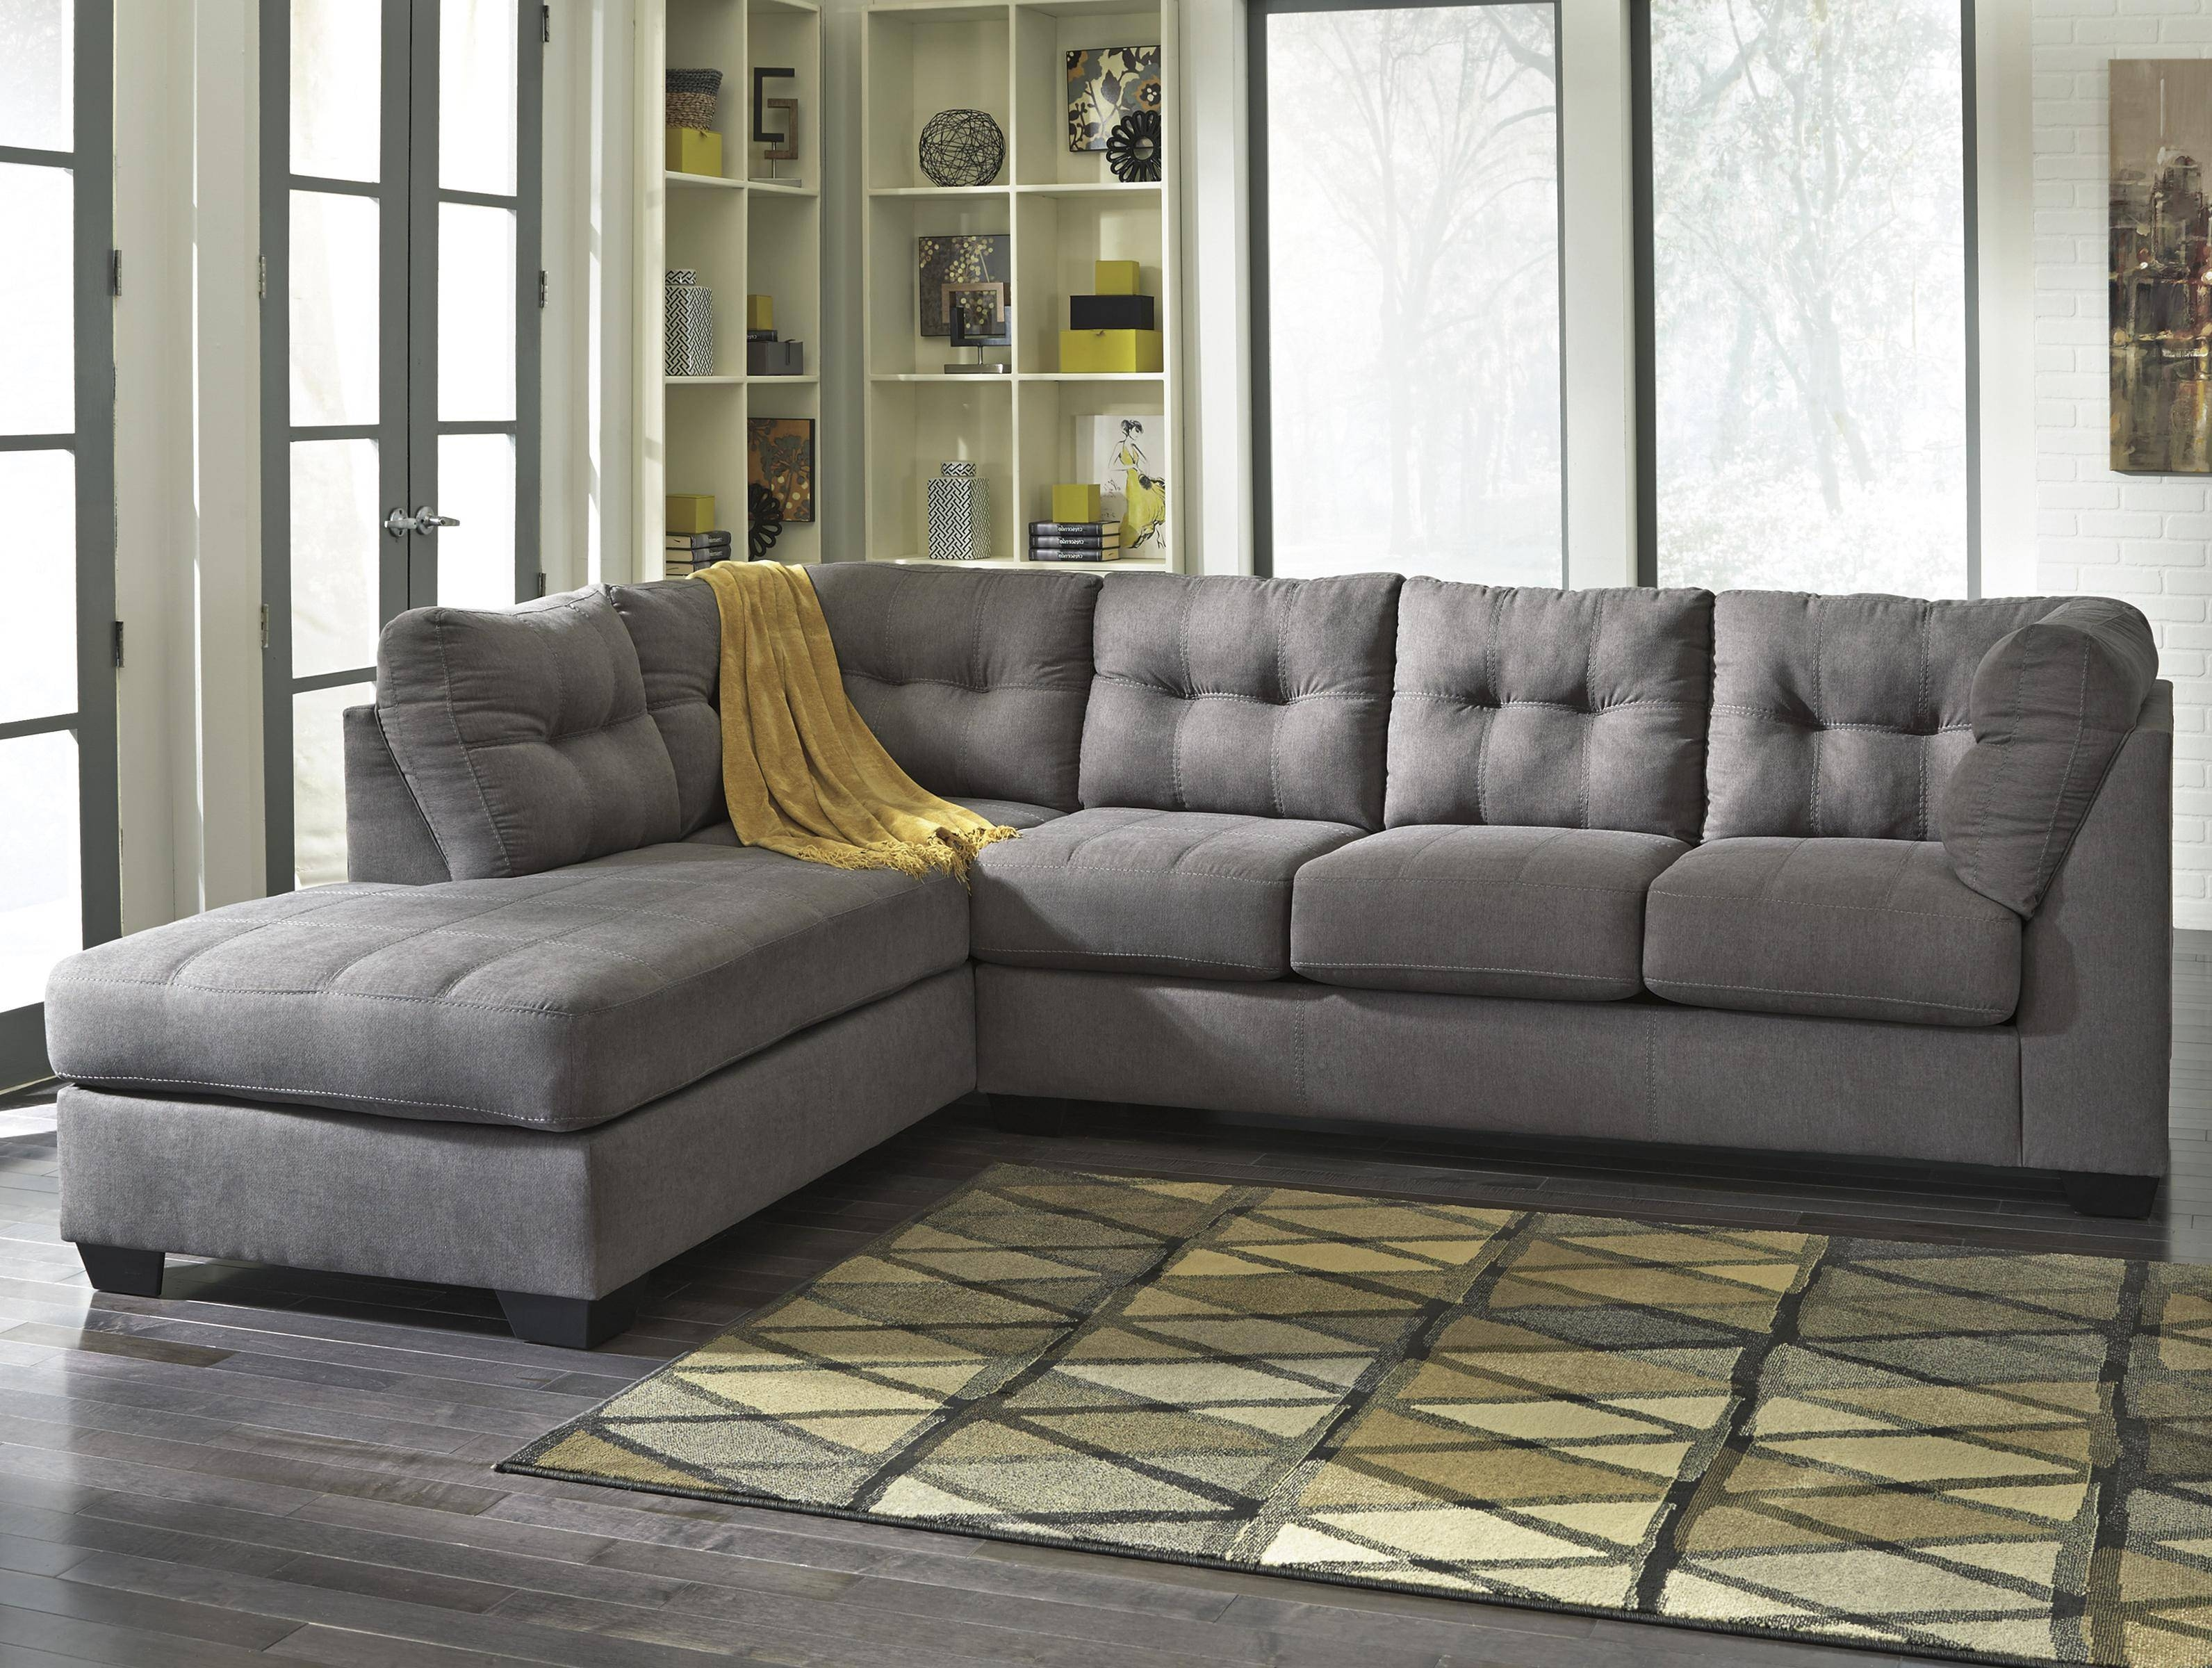 Benchcraft Maier – Charcoal 2 Piece Sectional With Left Chaise Throughout 3 Piece Sectional Sleeper Sofa (View 11 of 30)